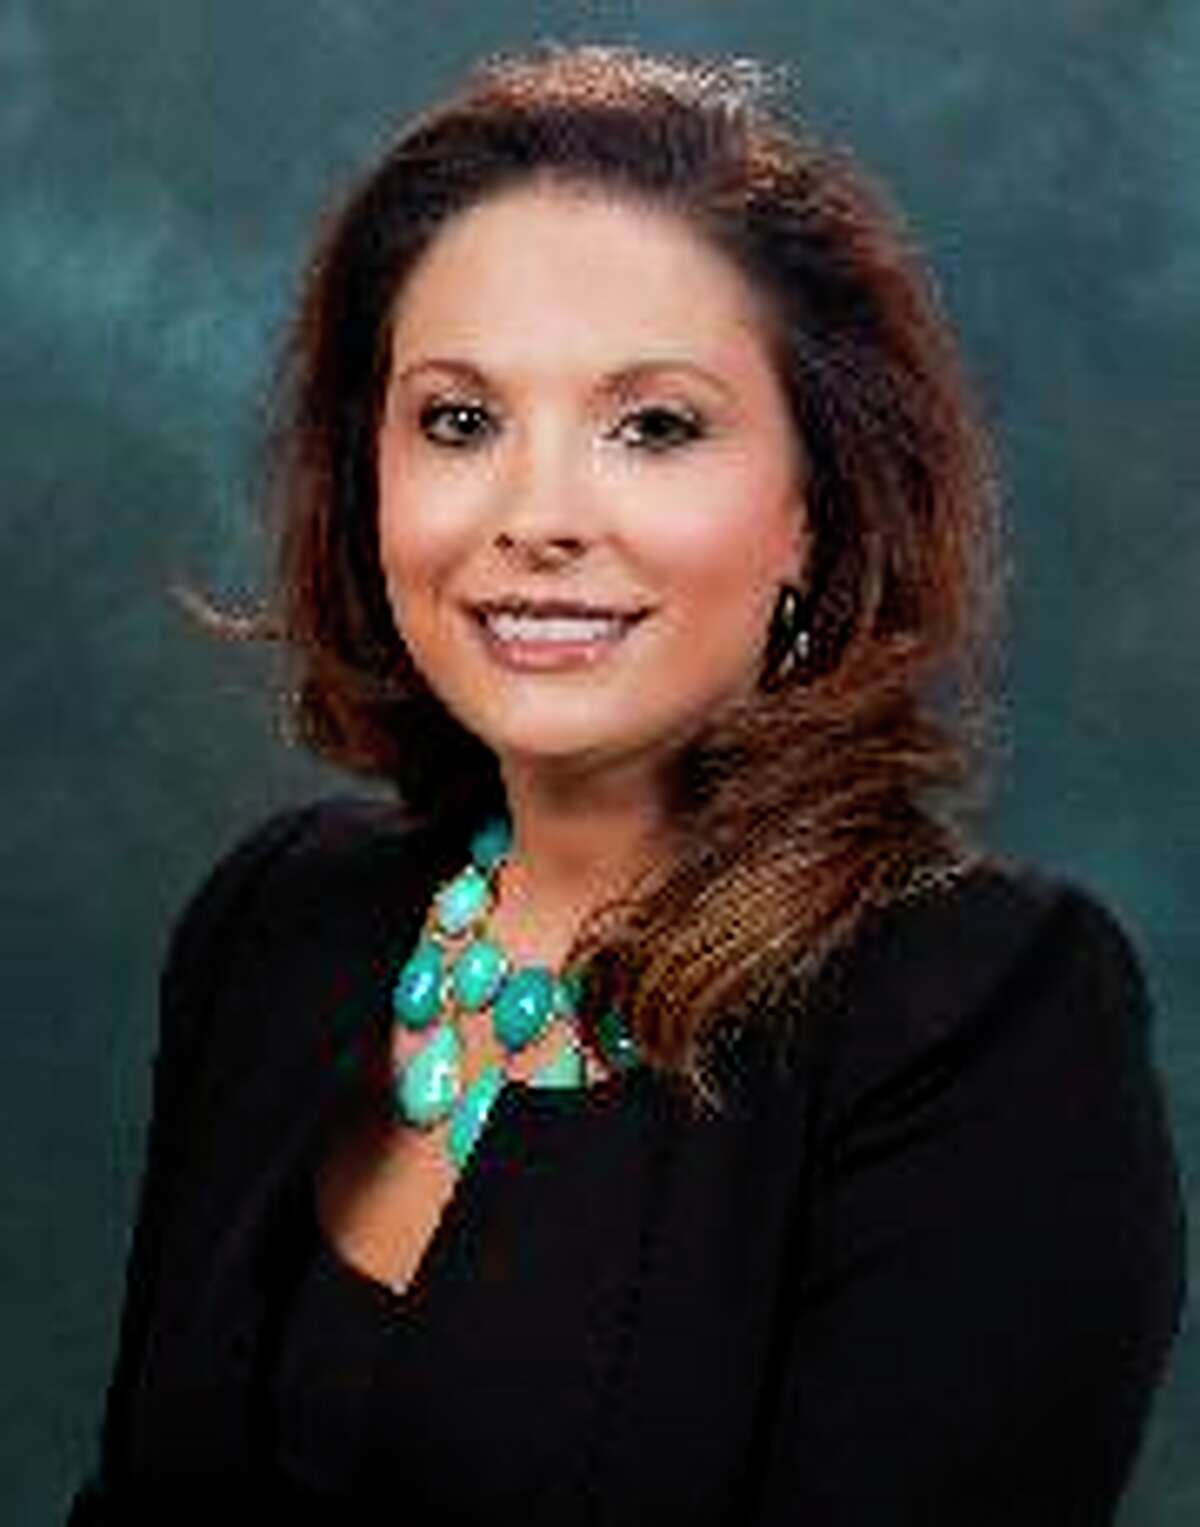 Mariselle Quijano is seeking re-election to Position 2 on the Pasadena ISD school board in the May 1 election.